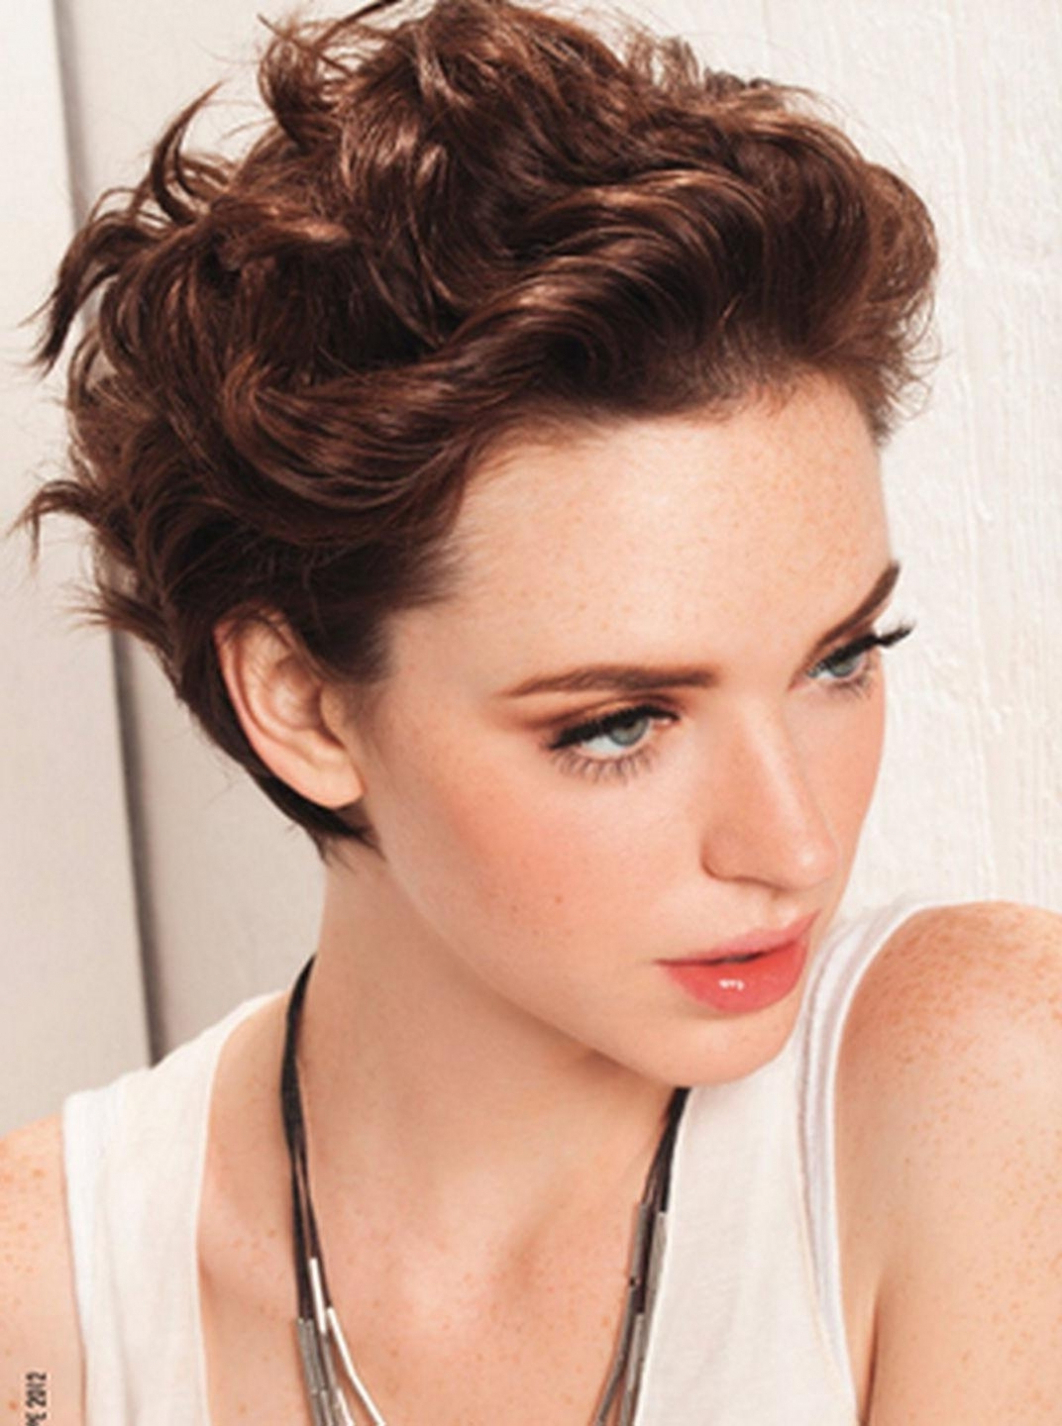 Hair Cuts : Winsome Short Haircuts For Thick Wavy Hair Over With Regard To Short Haircuts For Wavy Hair And Round Faces (View 8 of 25)